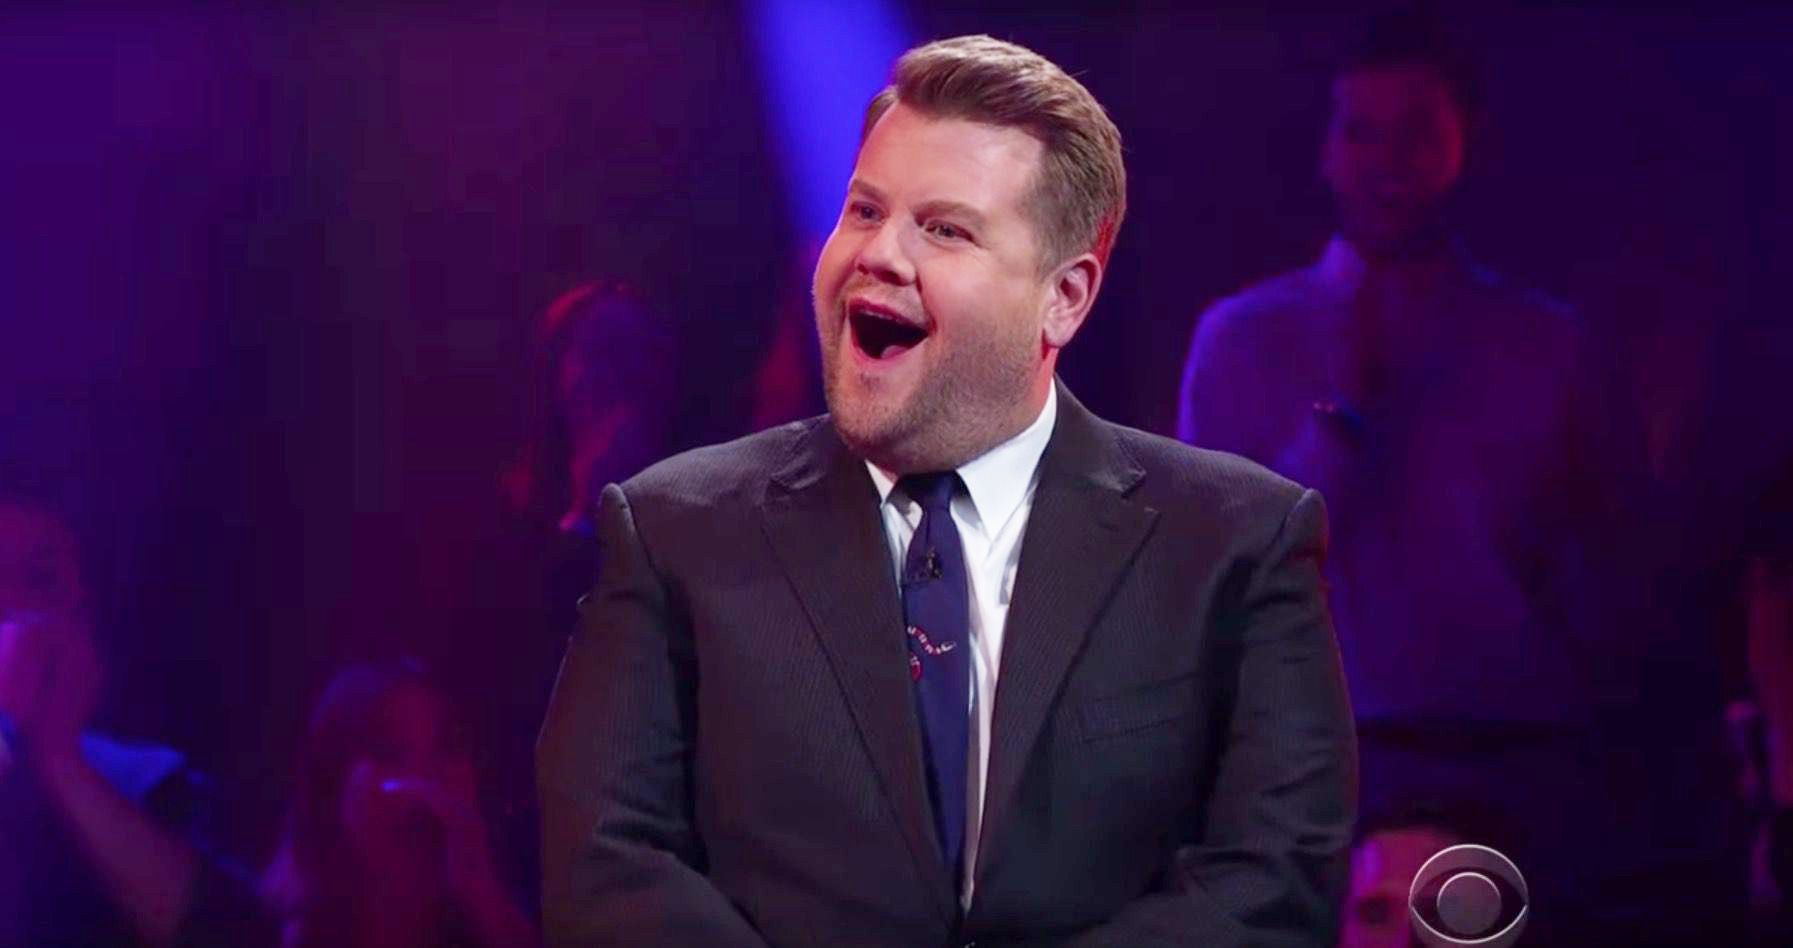 James Corden Addresses That He May Not Renew The Late Late Show